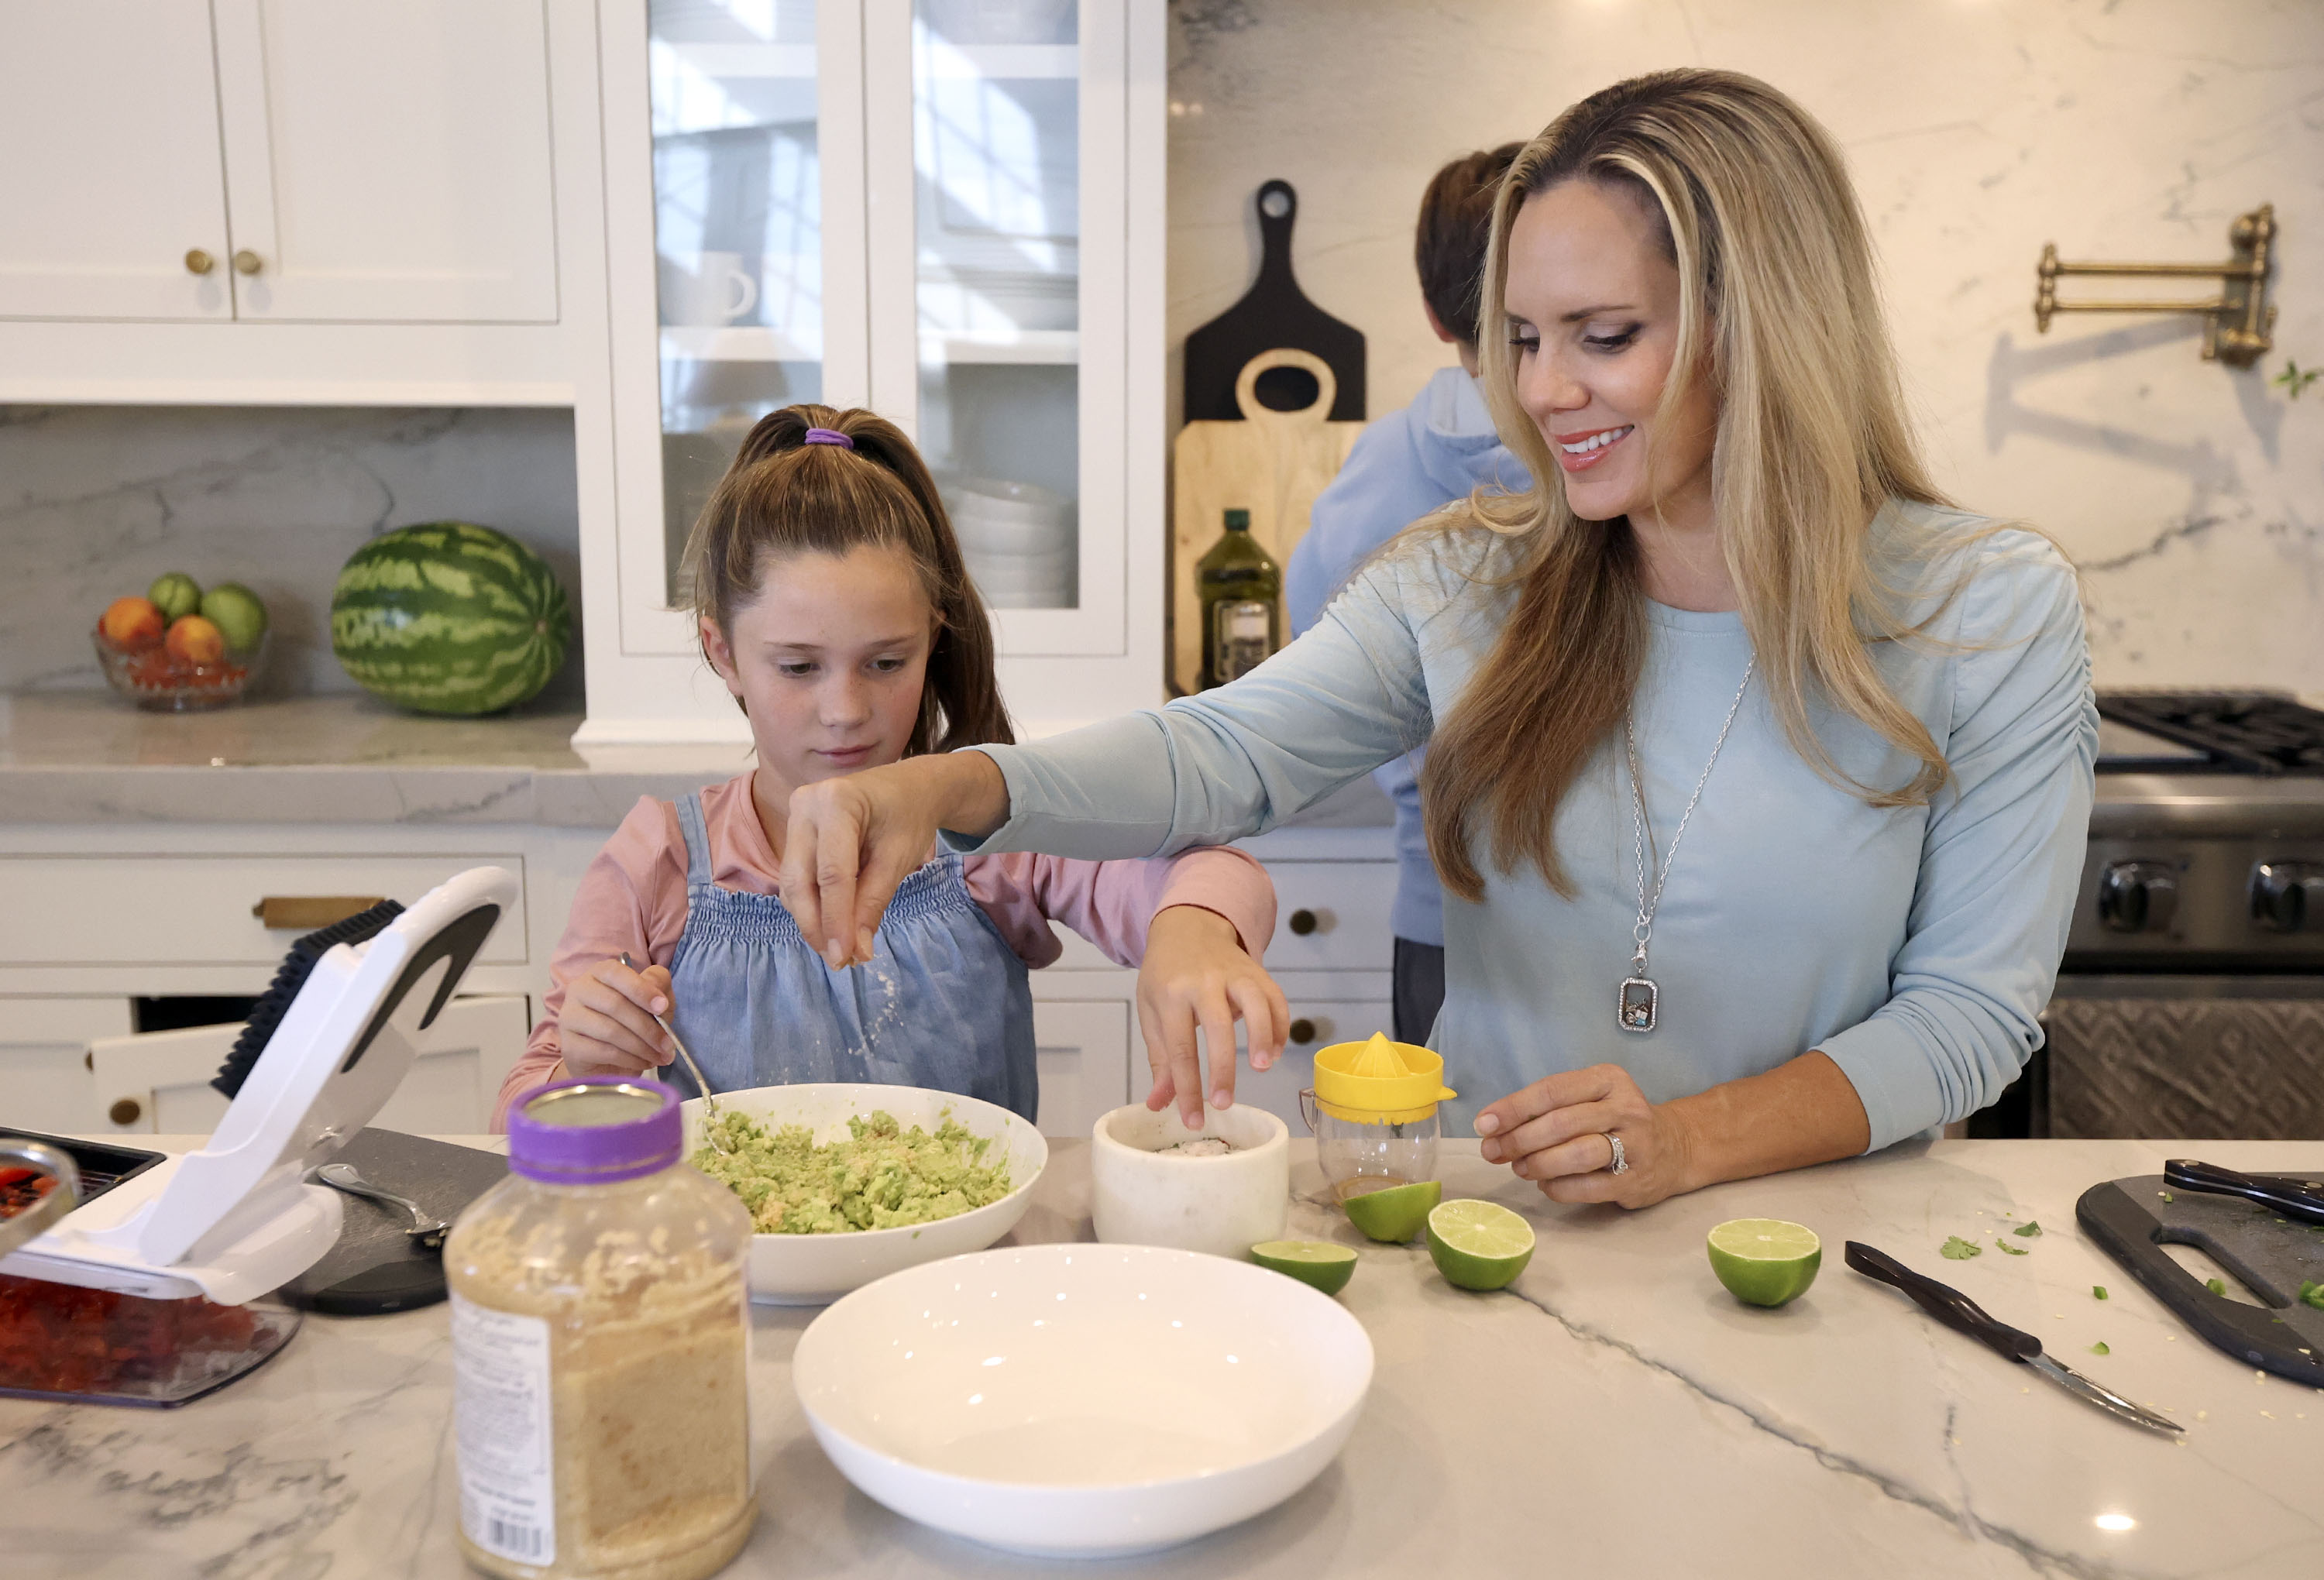 Grace Denney and her mother, Christy Denney, add salt to guacamole while making dinner for the rest of the family at their home in Highland on Wednesday, Oct. 13, 2021.